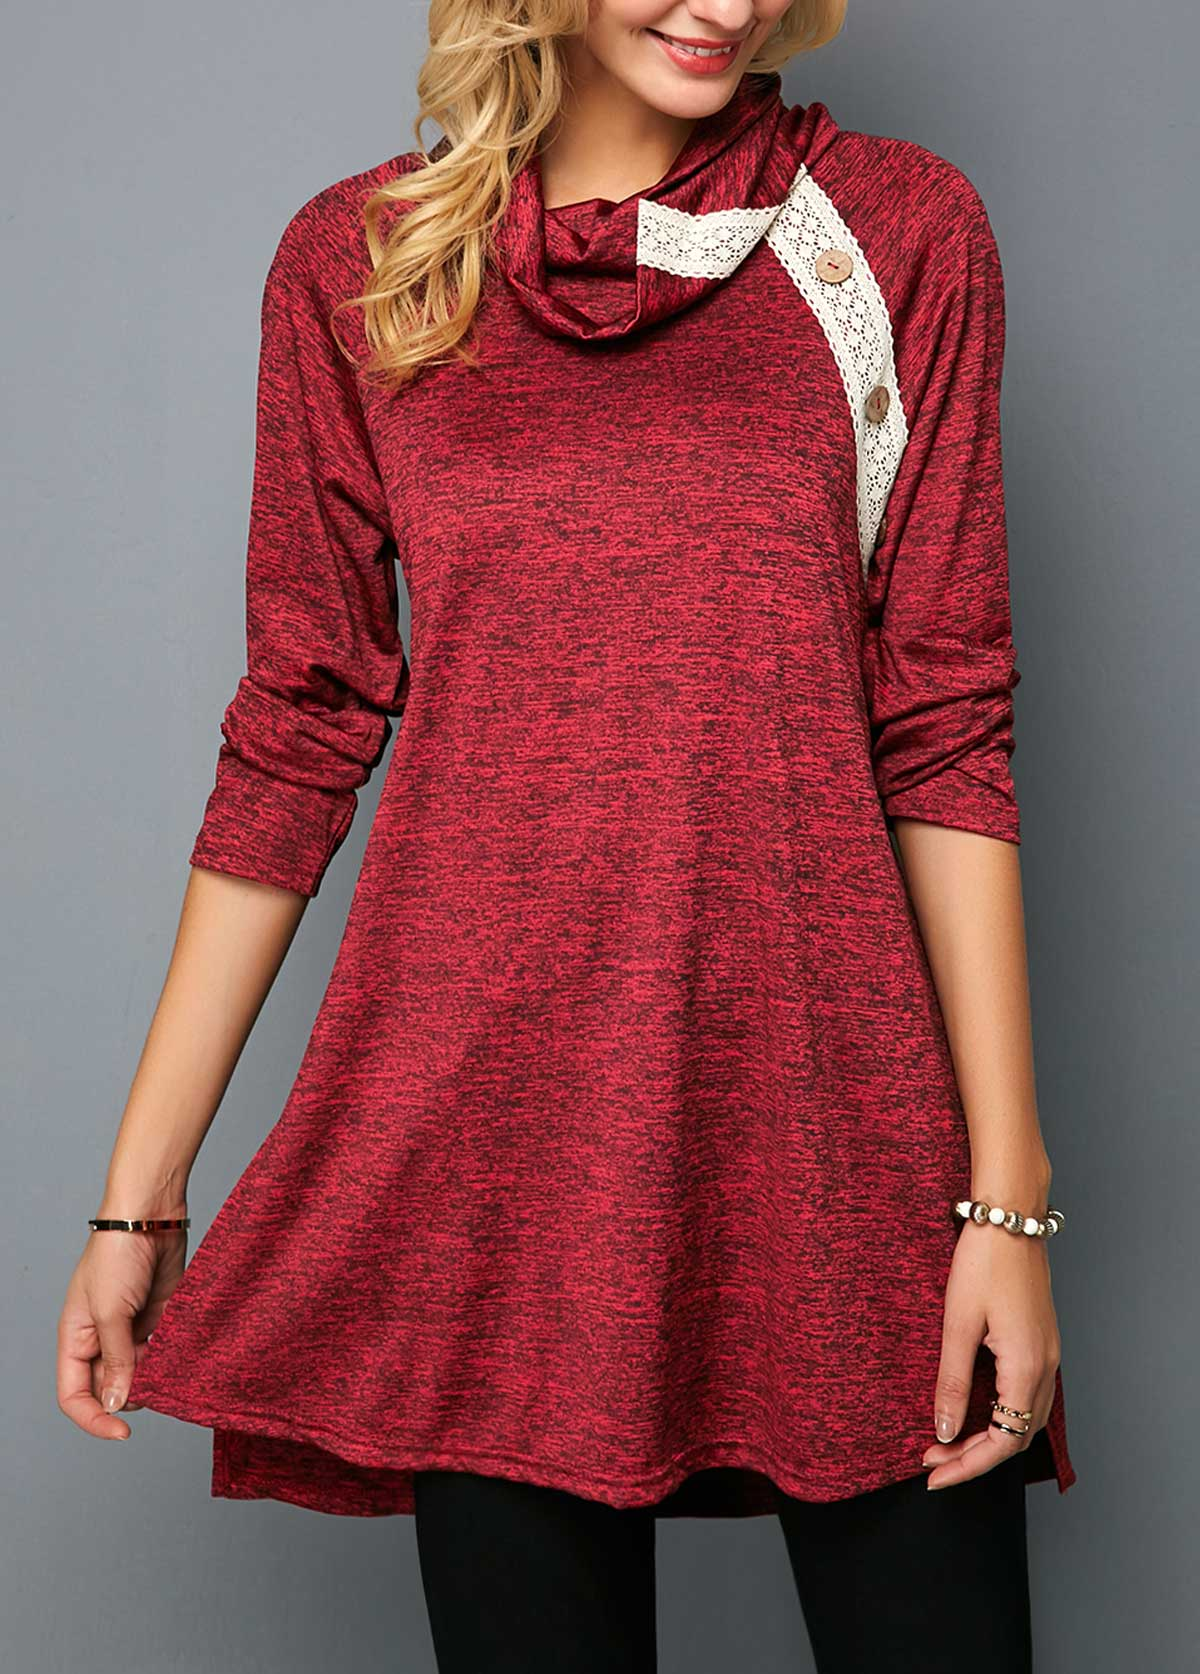 Cowl Neck Button Detail Wine Red Tunic T Shirt